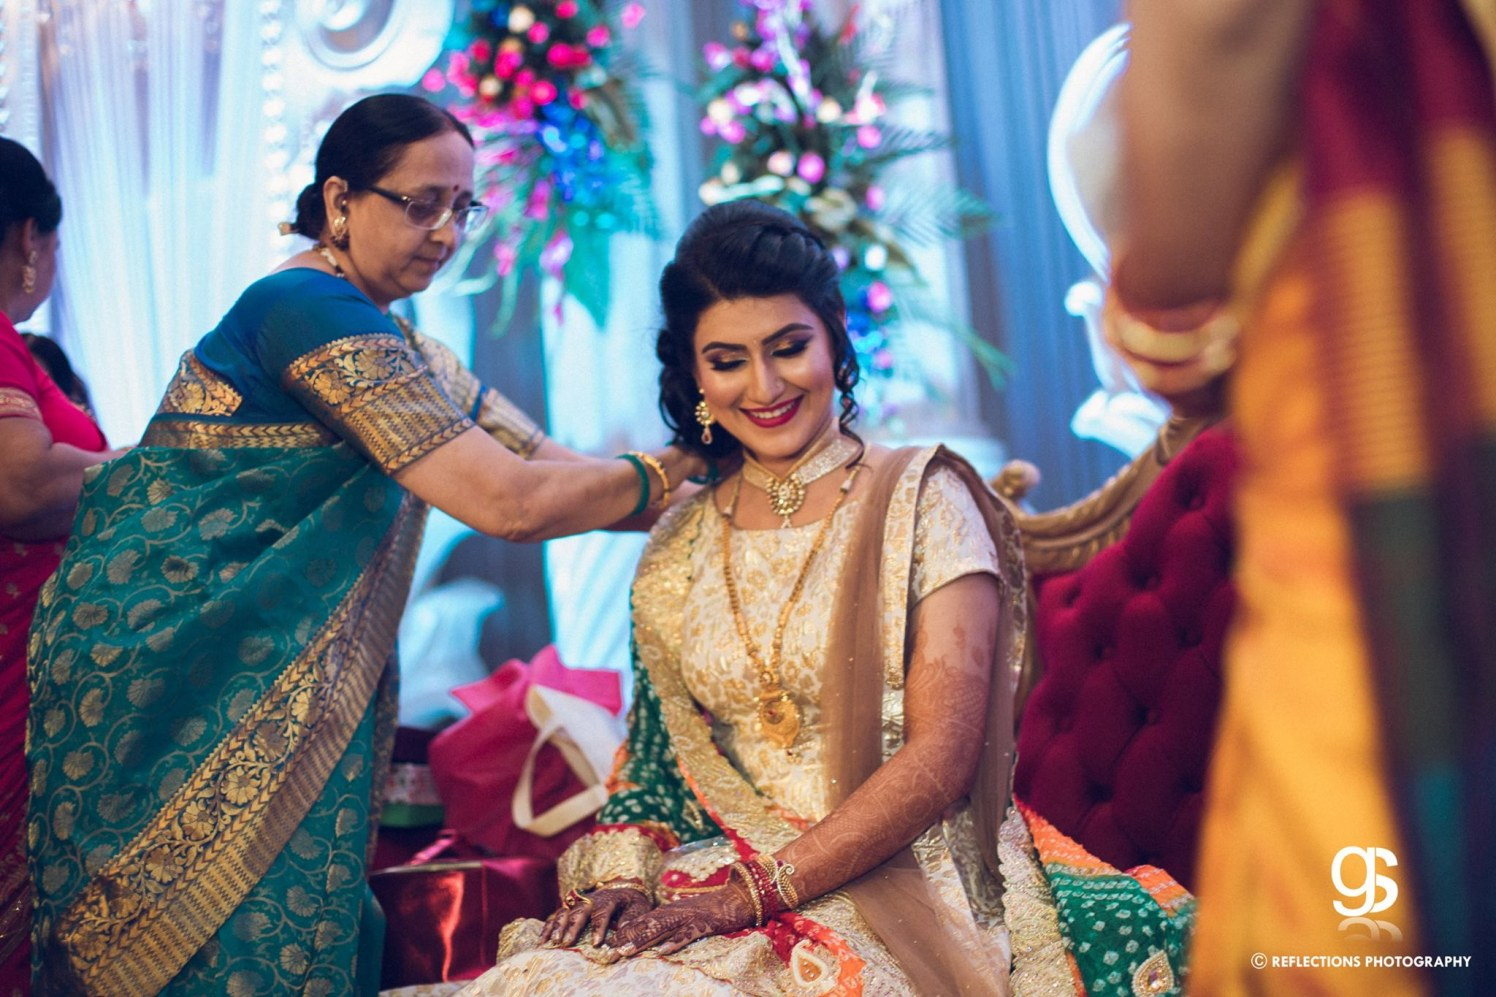 At her utmost grace! by Reflections Photography Wedding-photography | Weddings Photos & Ideas